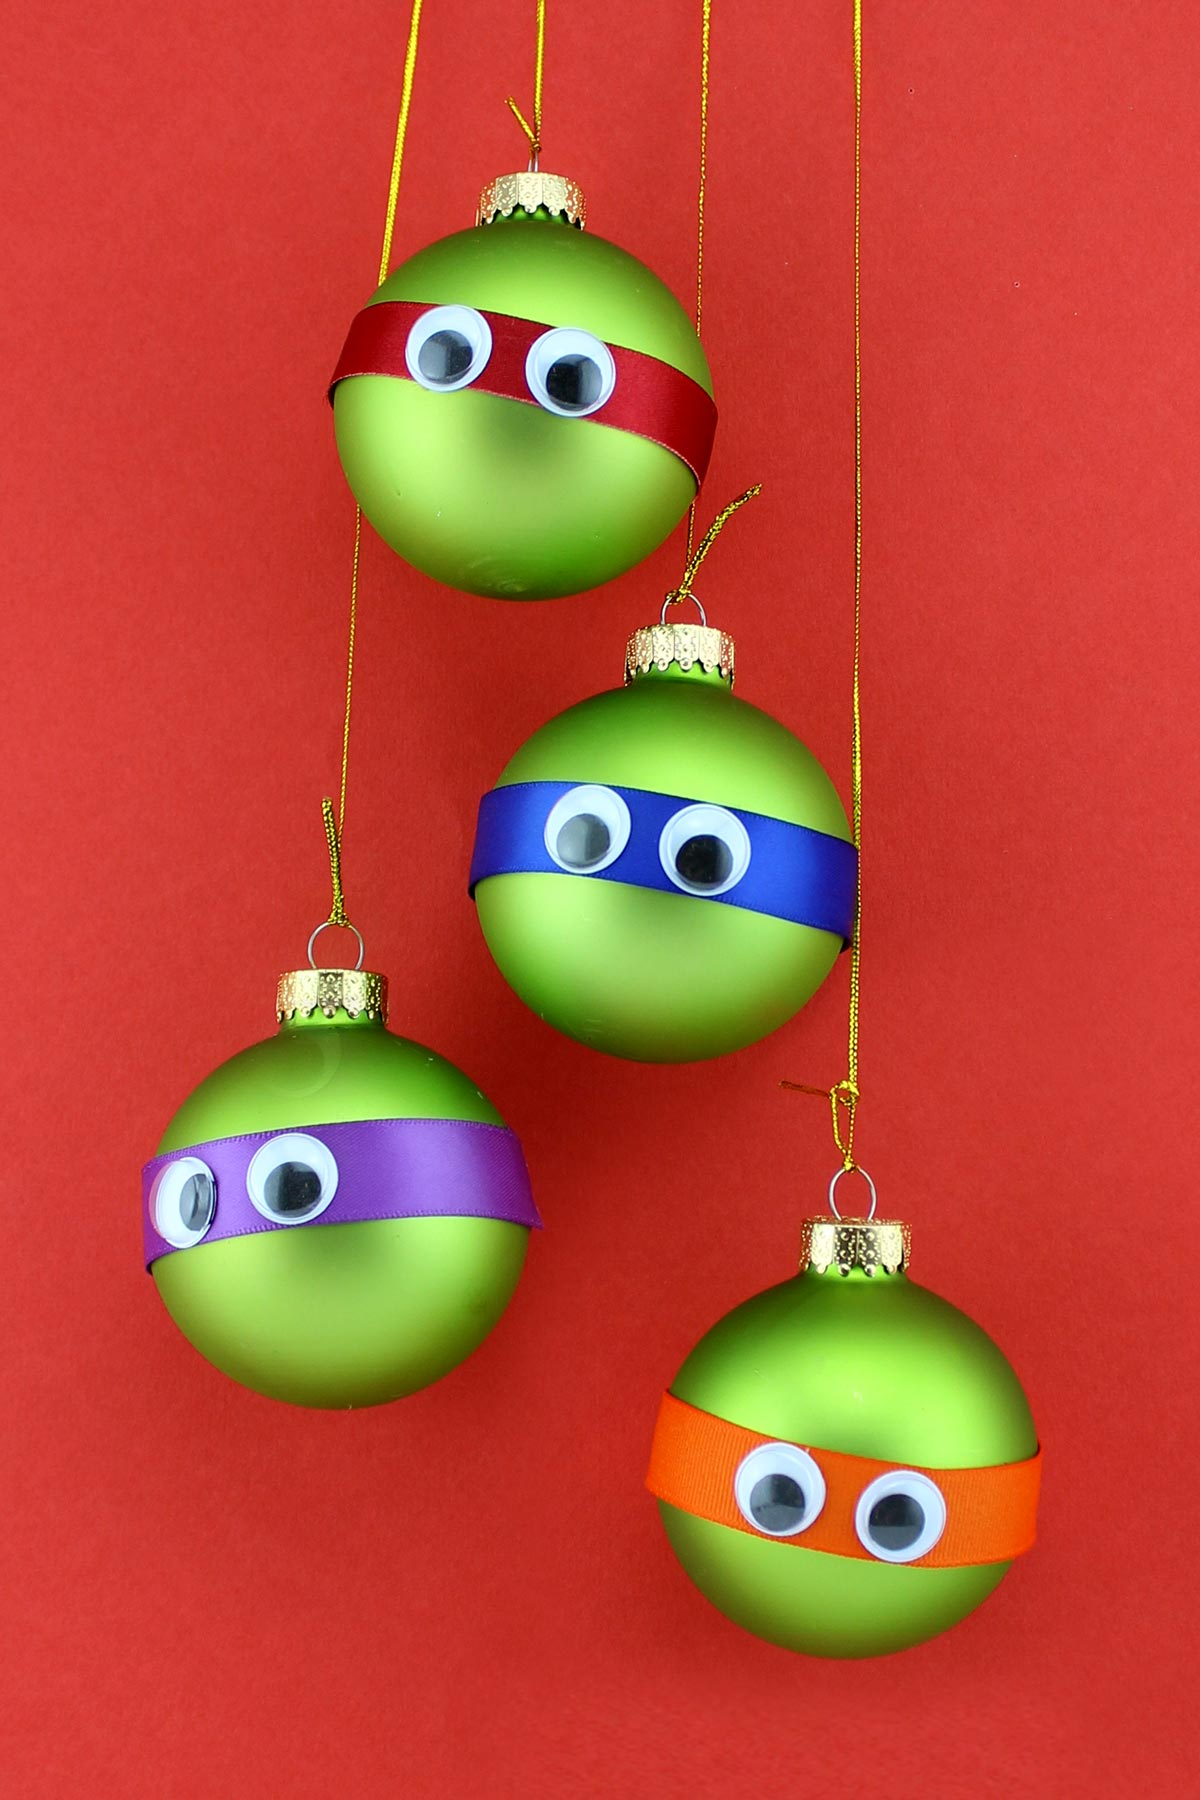 TMNT Googly-eyed Ornaments